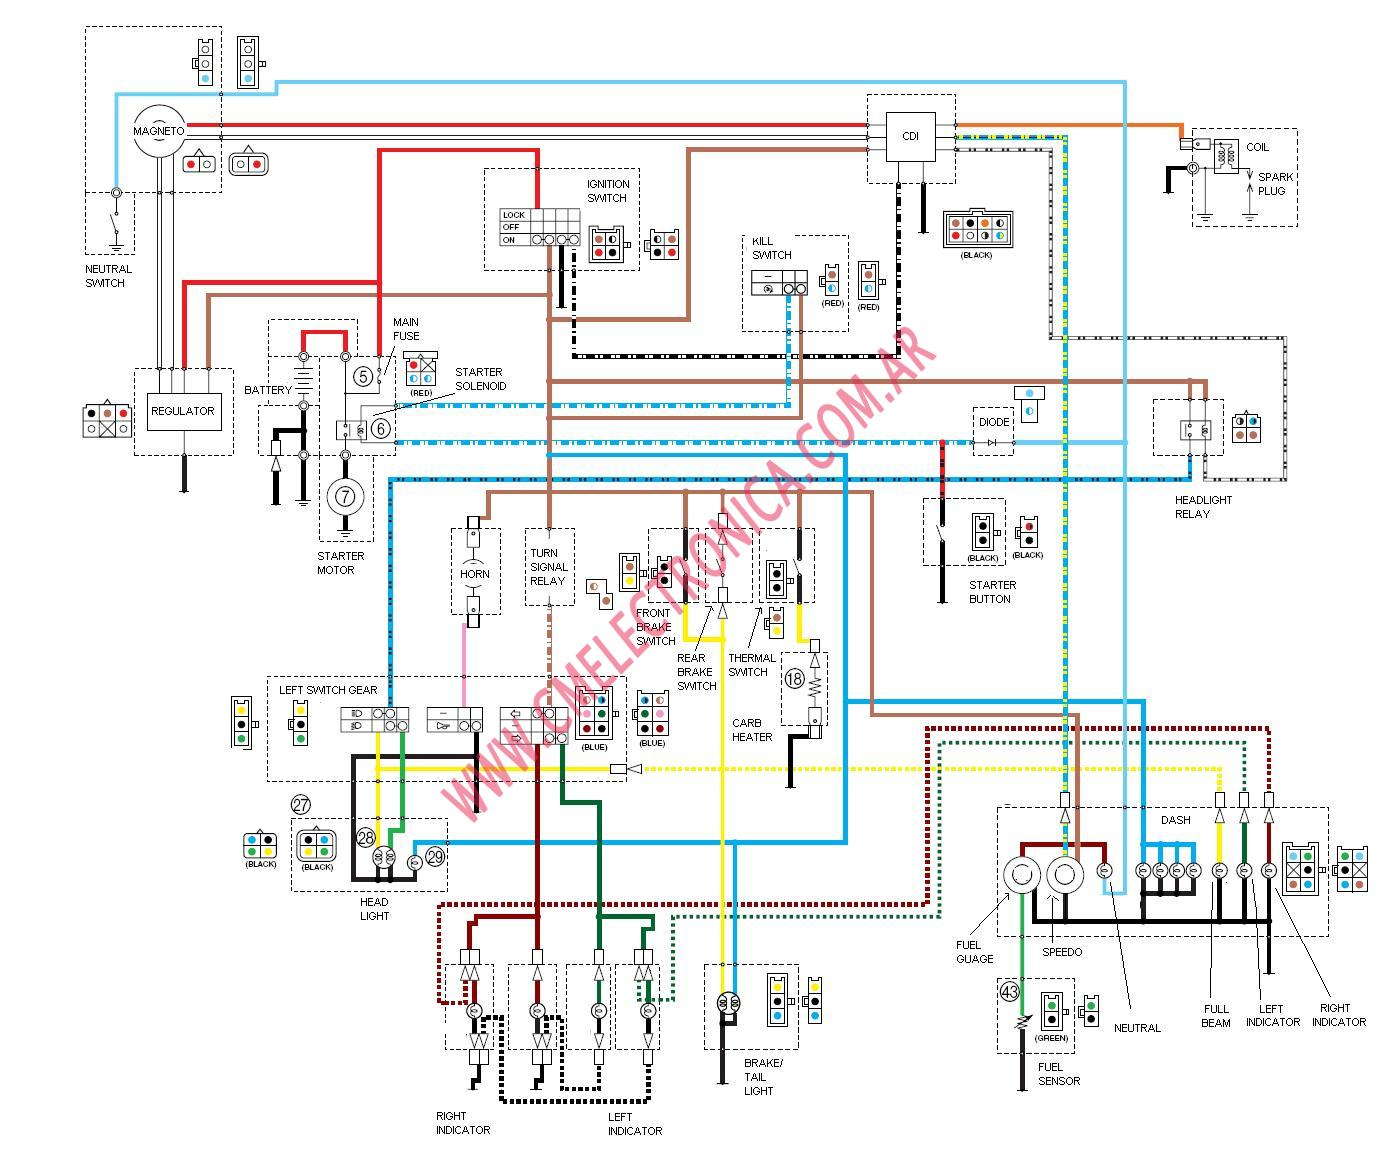 72 Vw Wiring Harness Diagram Will Be A Thing For Can Am Spyder Get Free Image 2000 Passat Stereo Kits